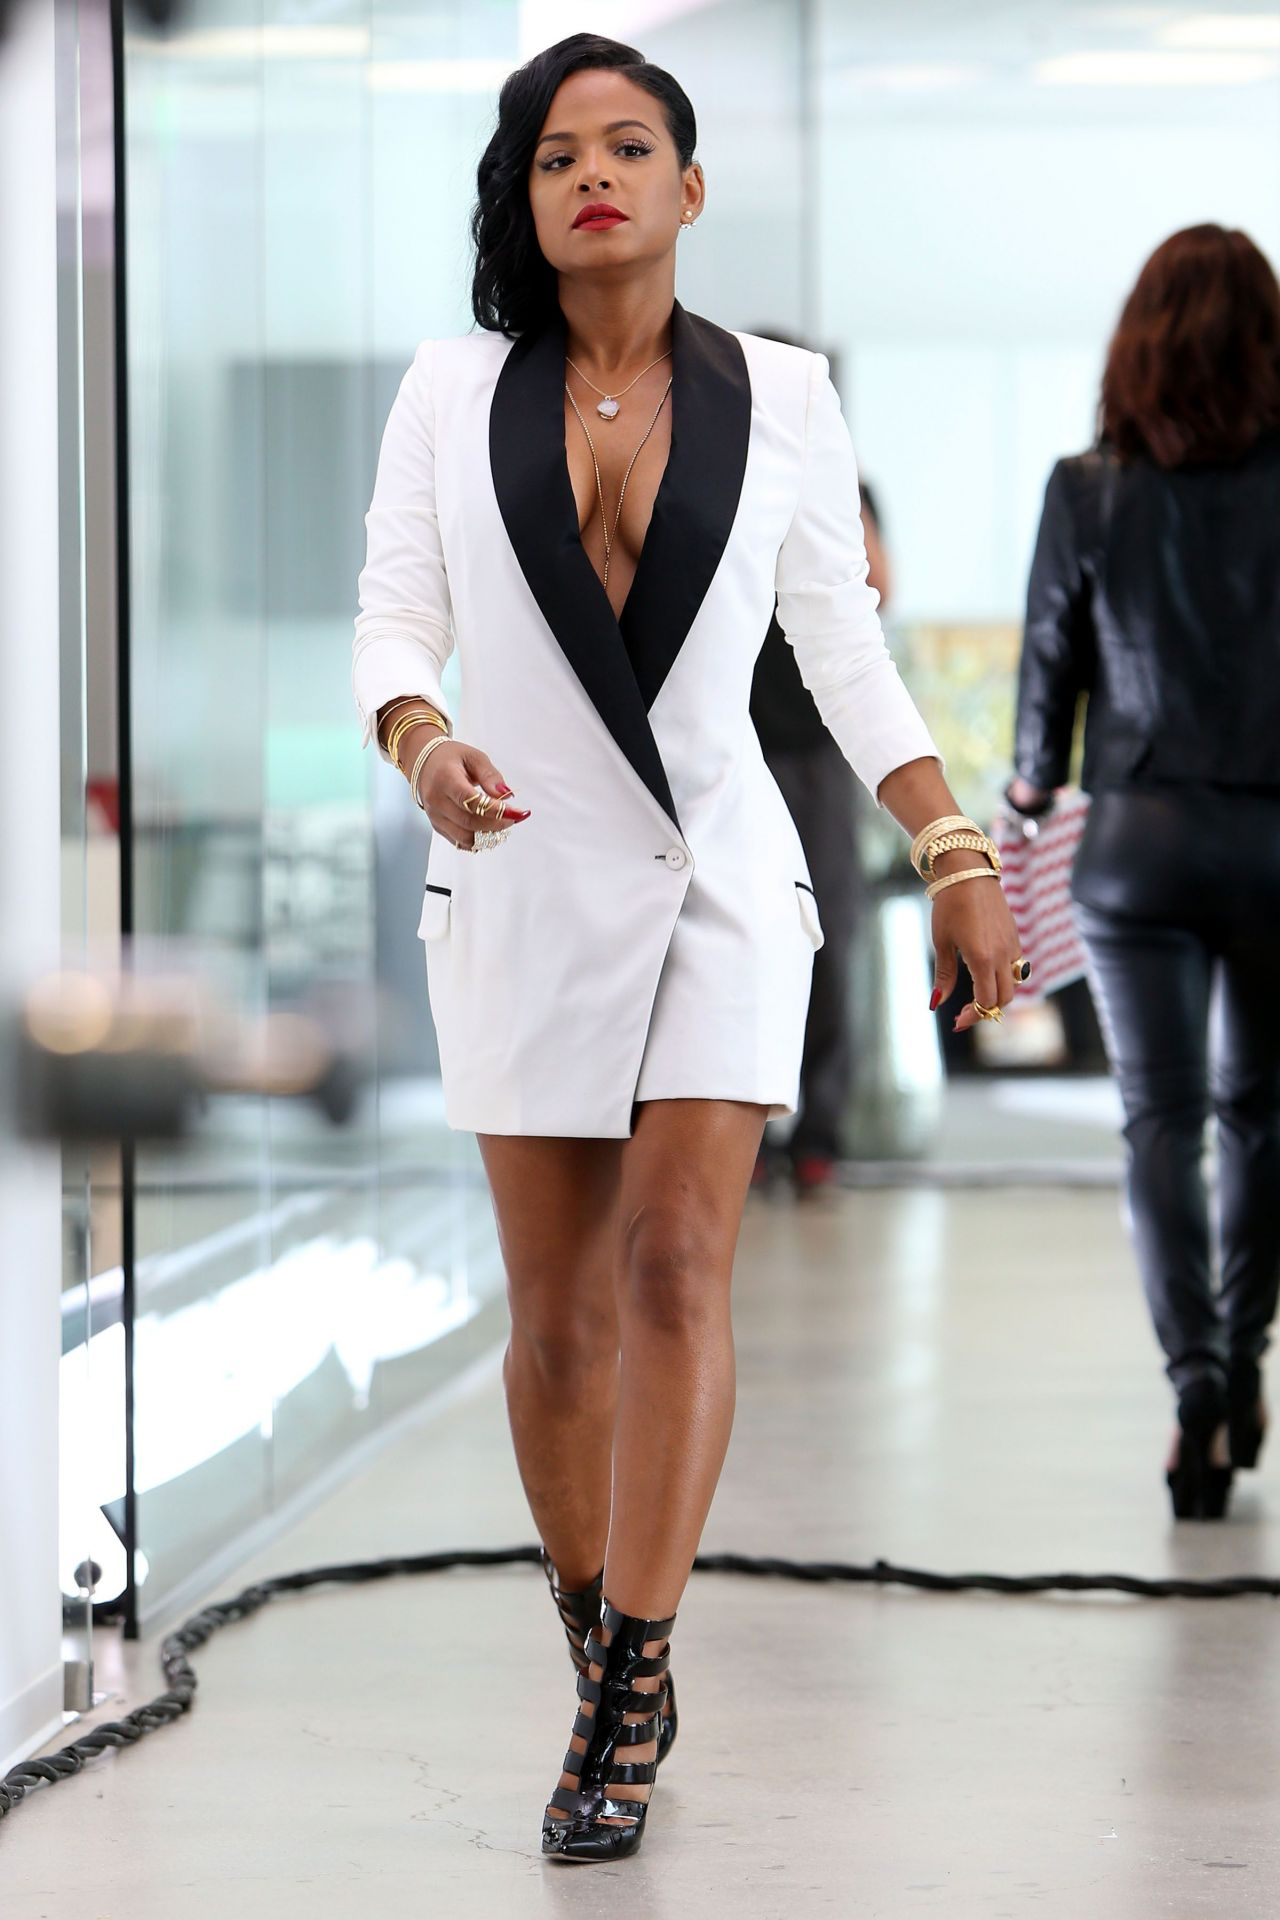 Christina Milian Her Like Me Music Vvideo Set In LA